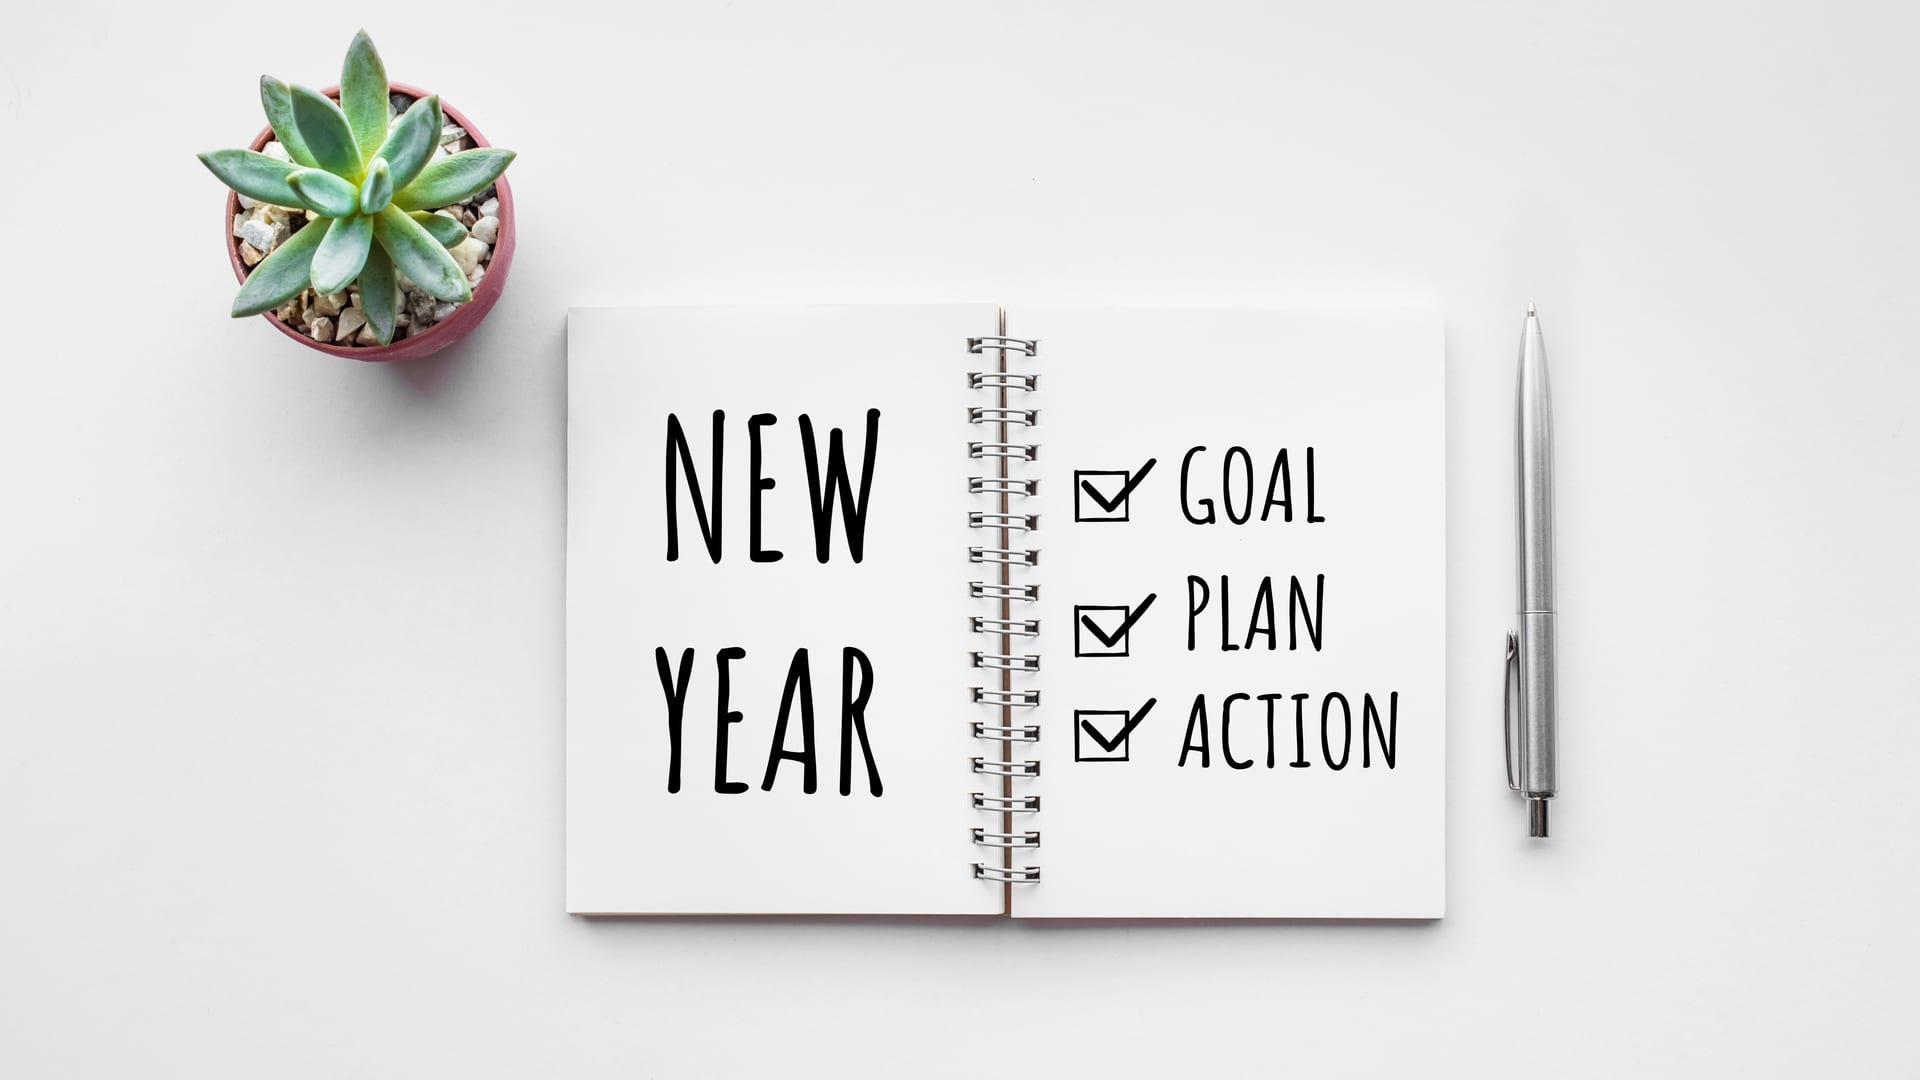 SMART Goals, Website Dreams, & Strategic Plans